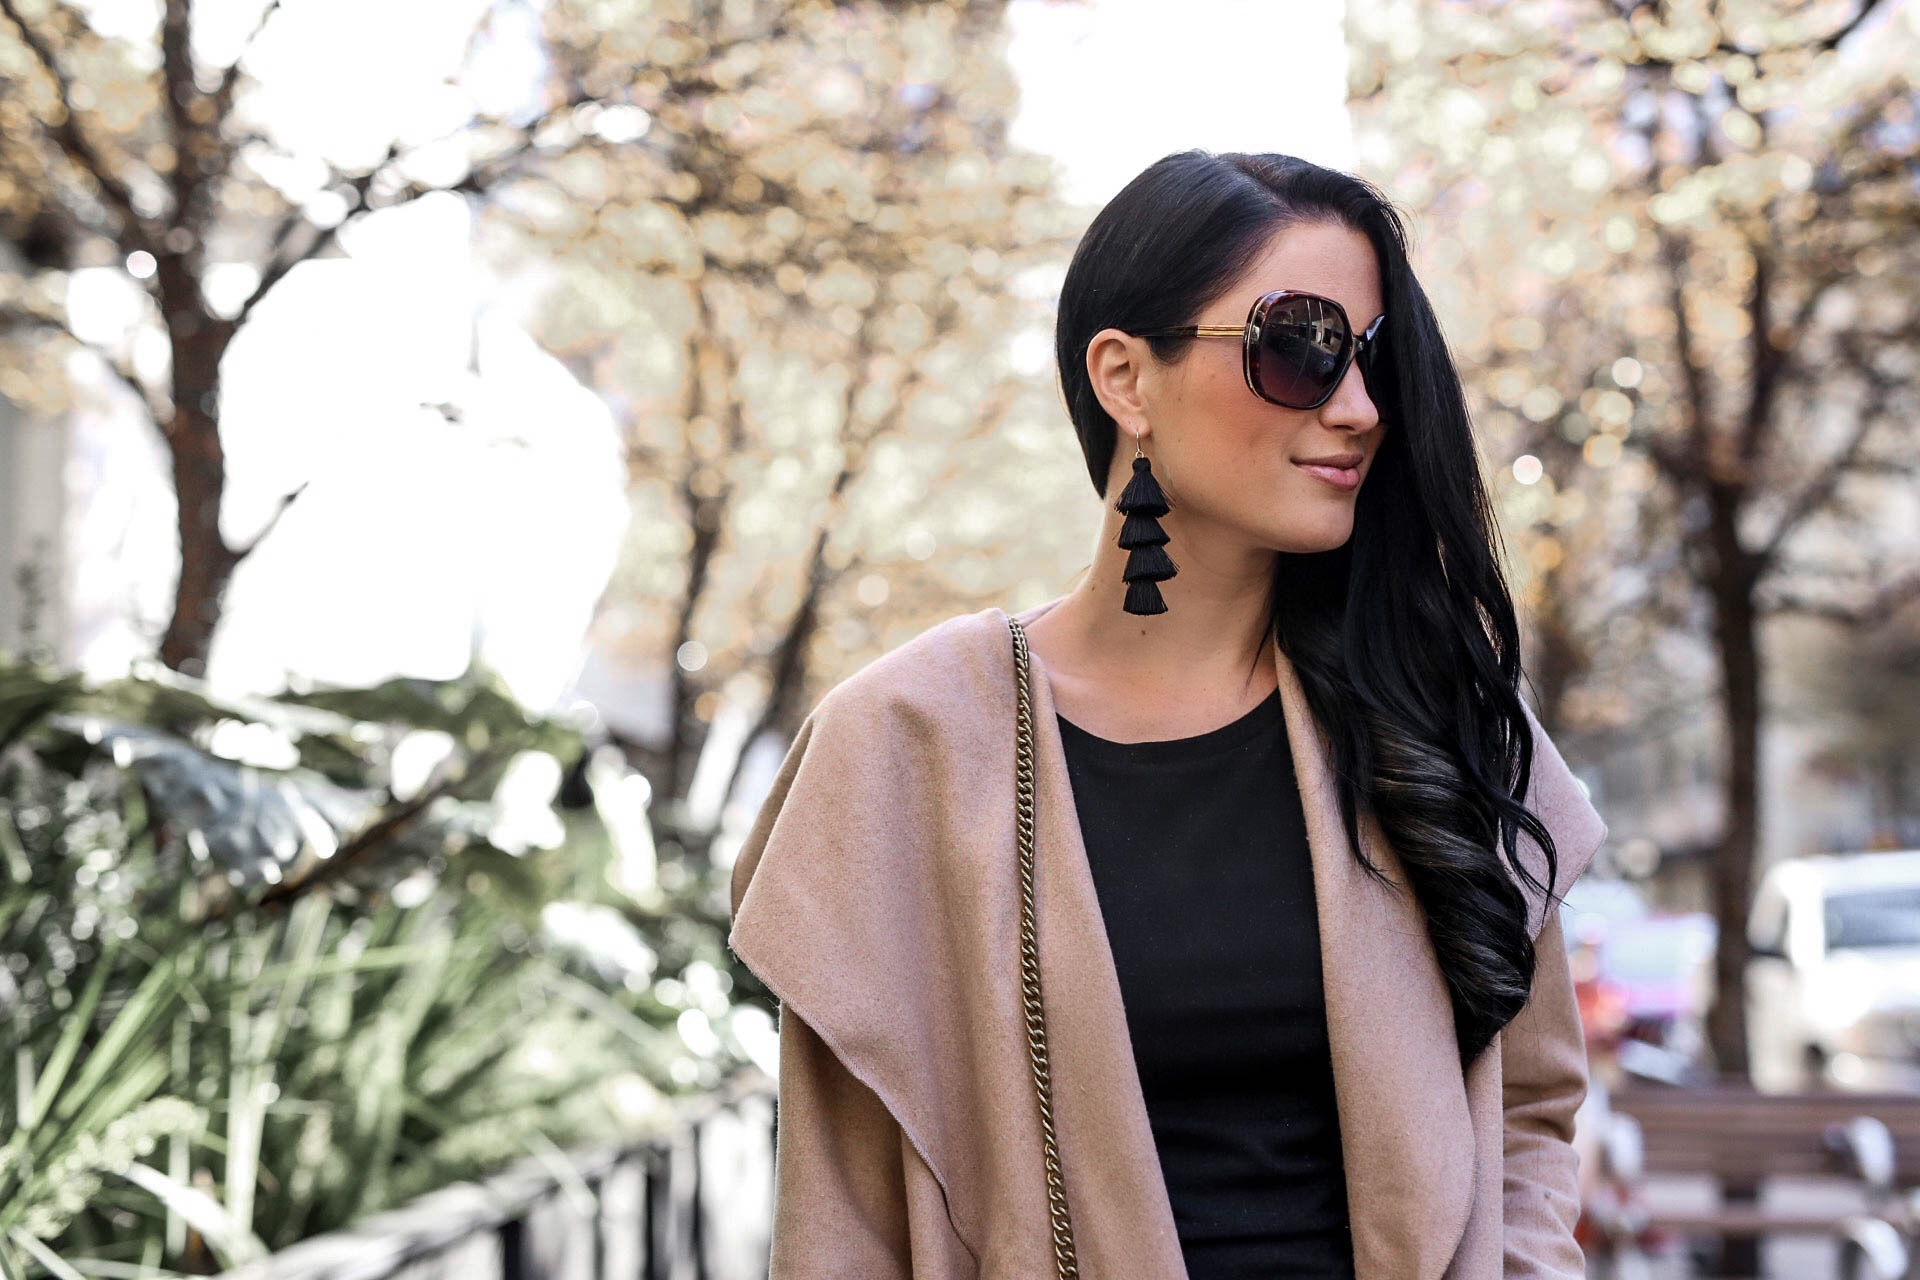 DTKAustin shares her top affordable coats from Chicwish that are under $100. Handbag from Henri Bendel, OTK boots from Goodnight Macaroon. - 10 Must-Have Classic Affordable Coats for Winter by Austin fashion blogger Dressed to Kill